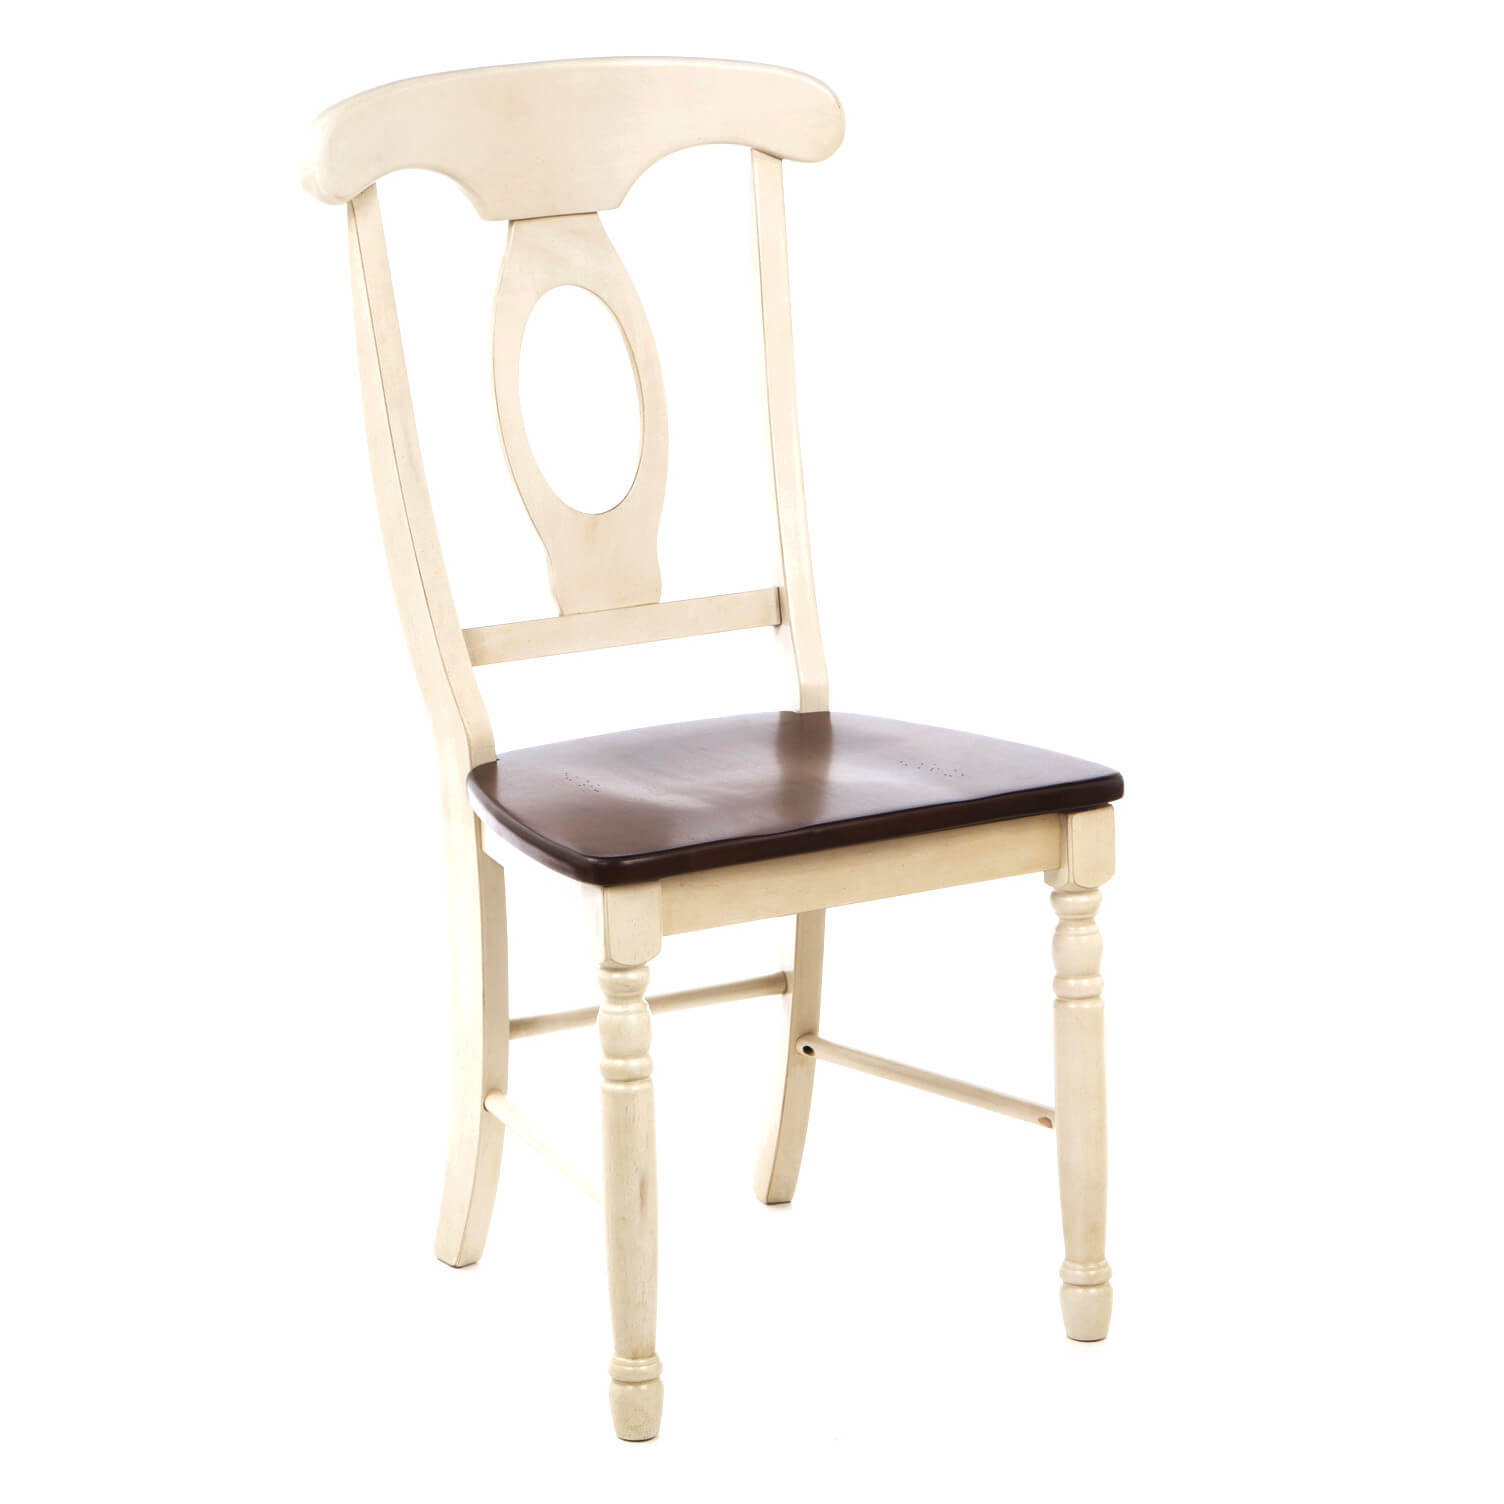 Wood frame chairs often come unadorned with upholstery. Instead, they may sport a molded wood seat, for a more direct, minimal look, while still offering comfort and style.